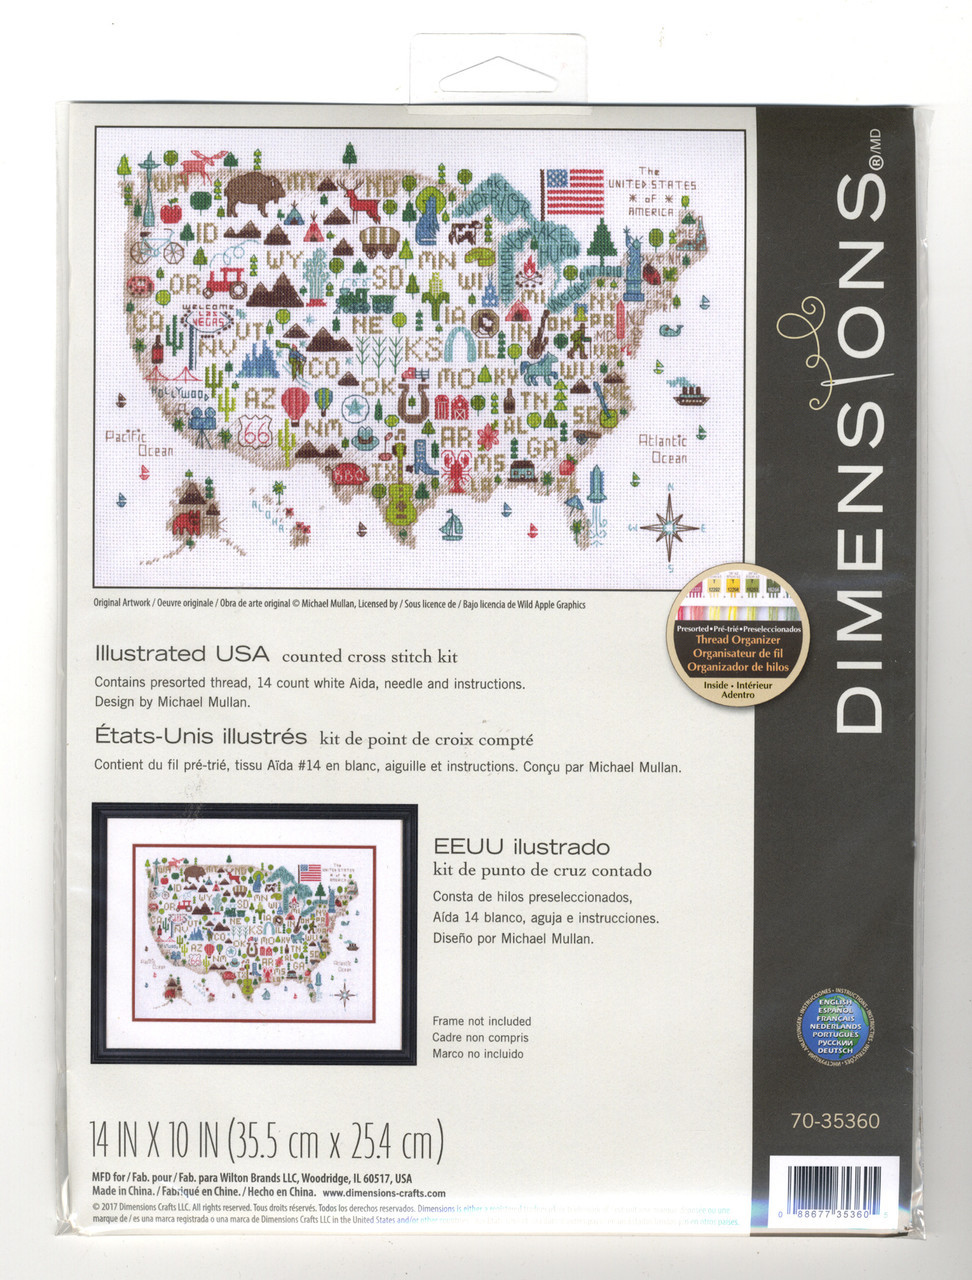 Dimensions - Illustrated USA